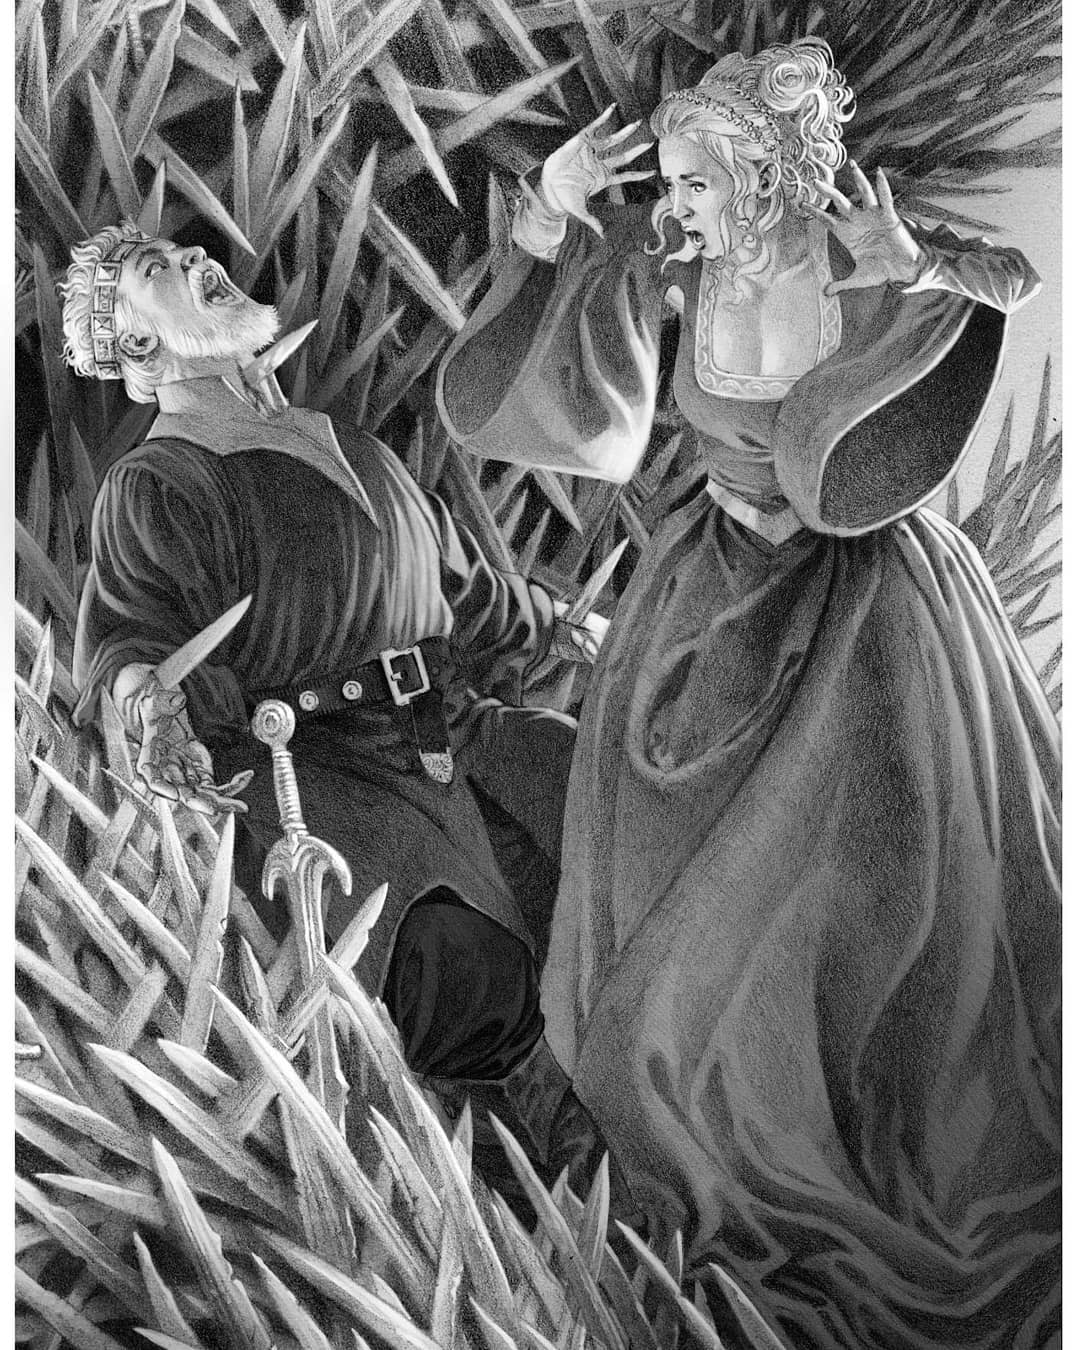 Resultado de imagen para fire and blood george rr martin illustrations